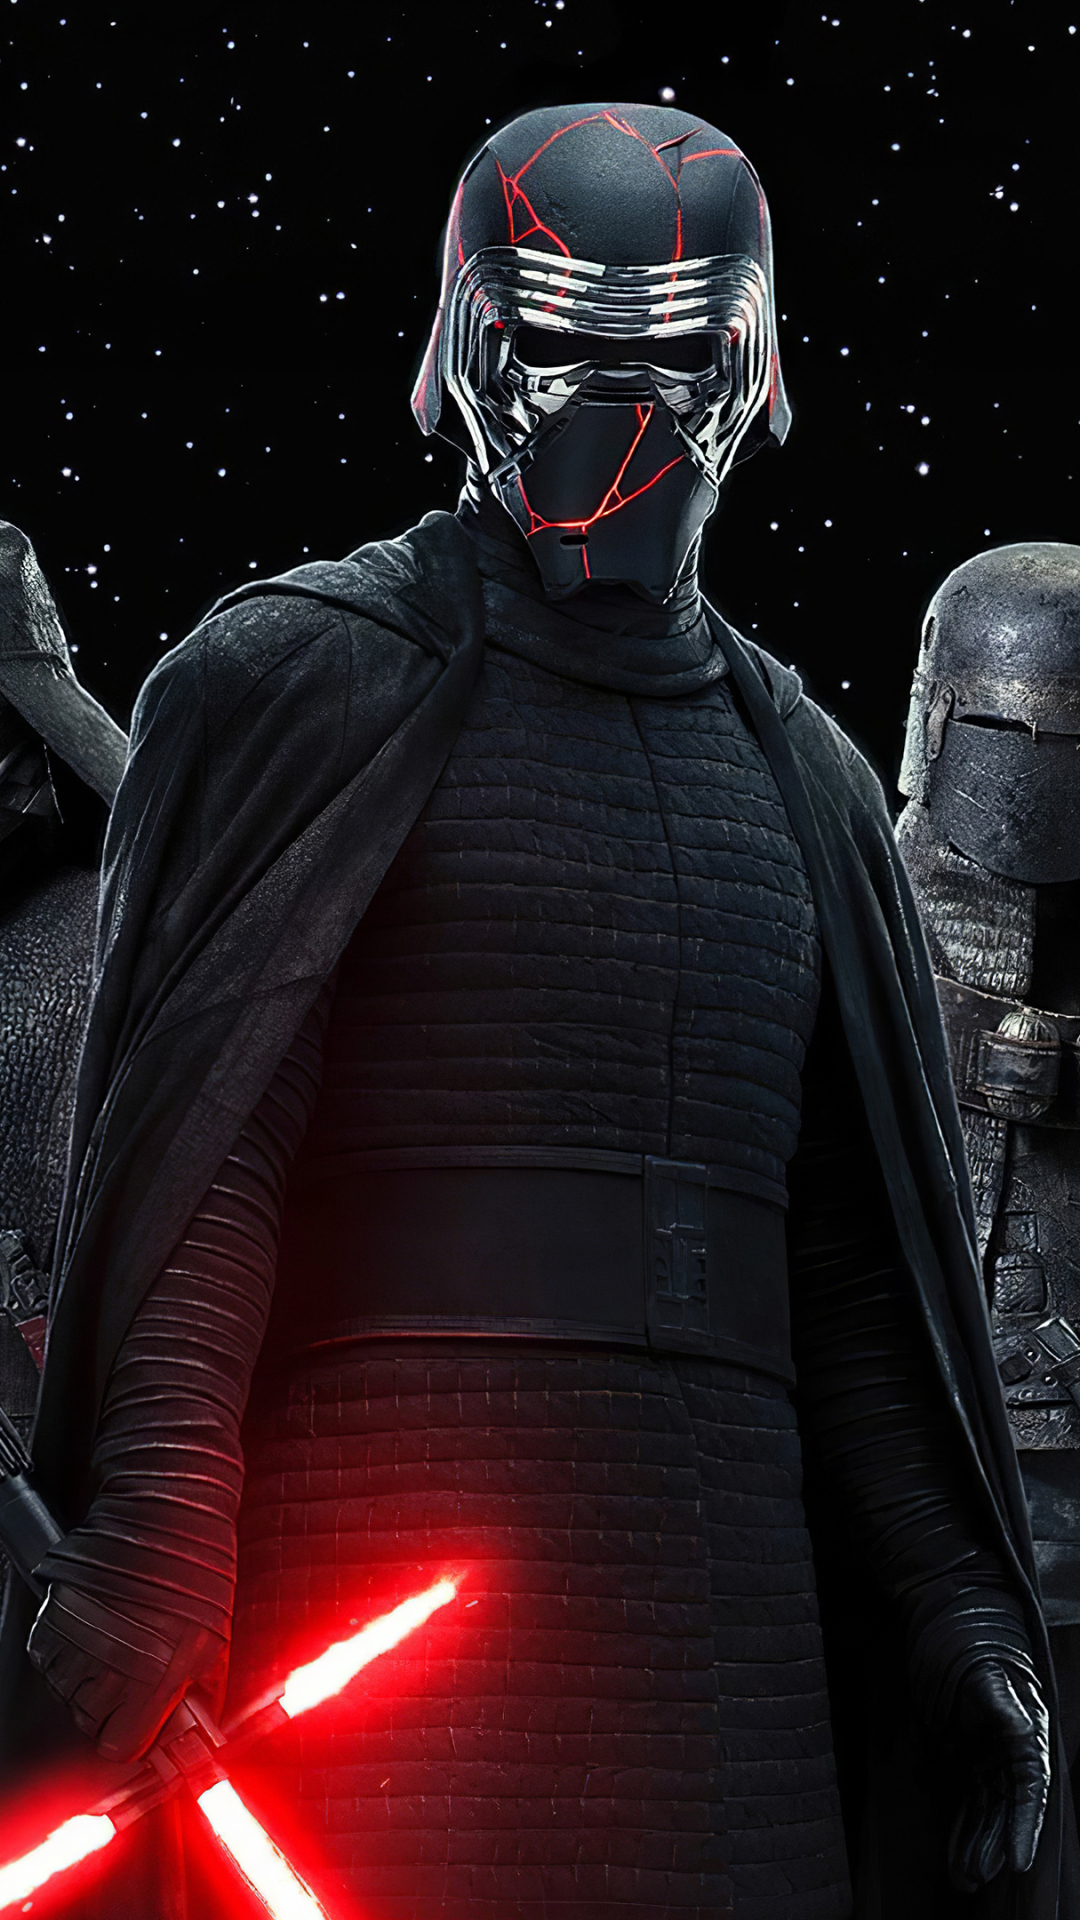 Movie Star Wars The Rise Of Skywalker 1080x1920 Wallpaper Id 829686 Mobile Abyss